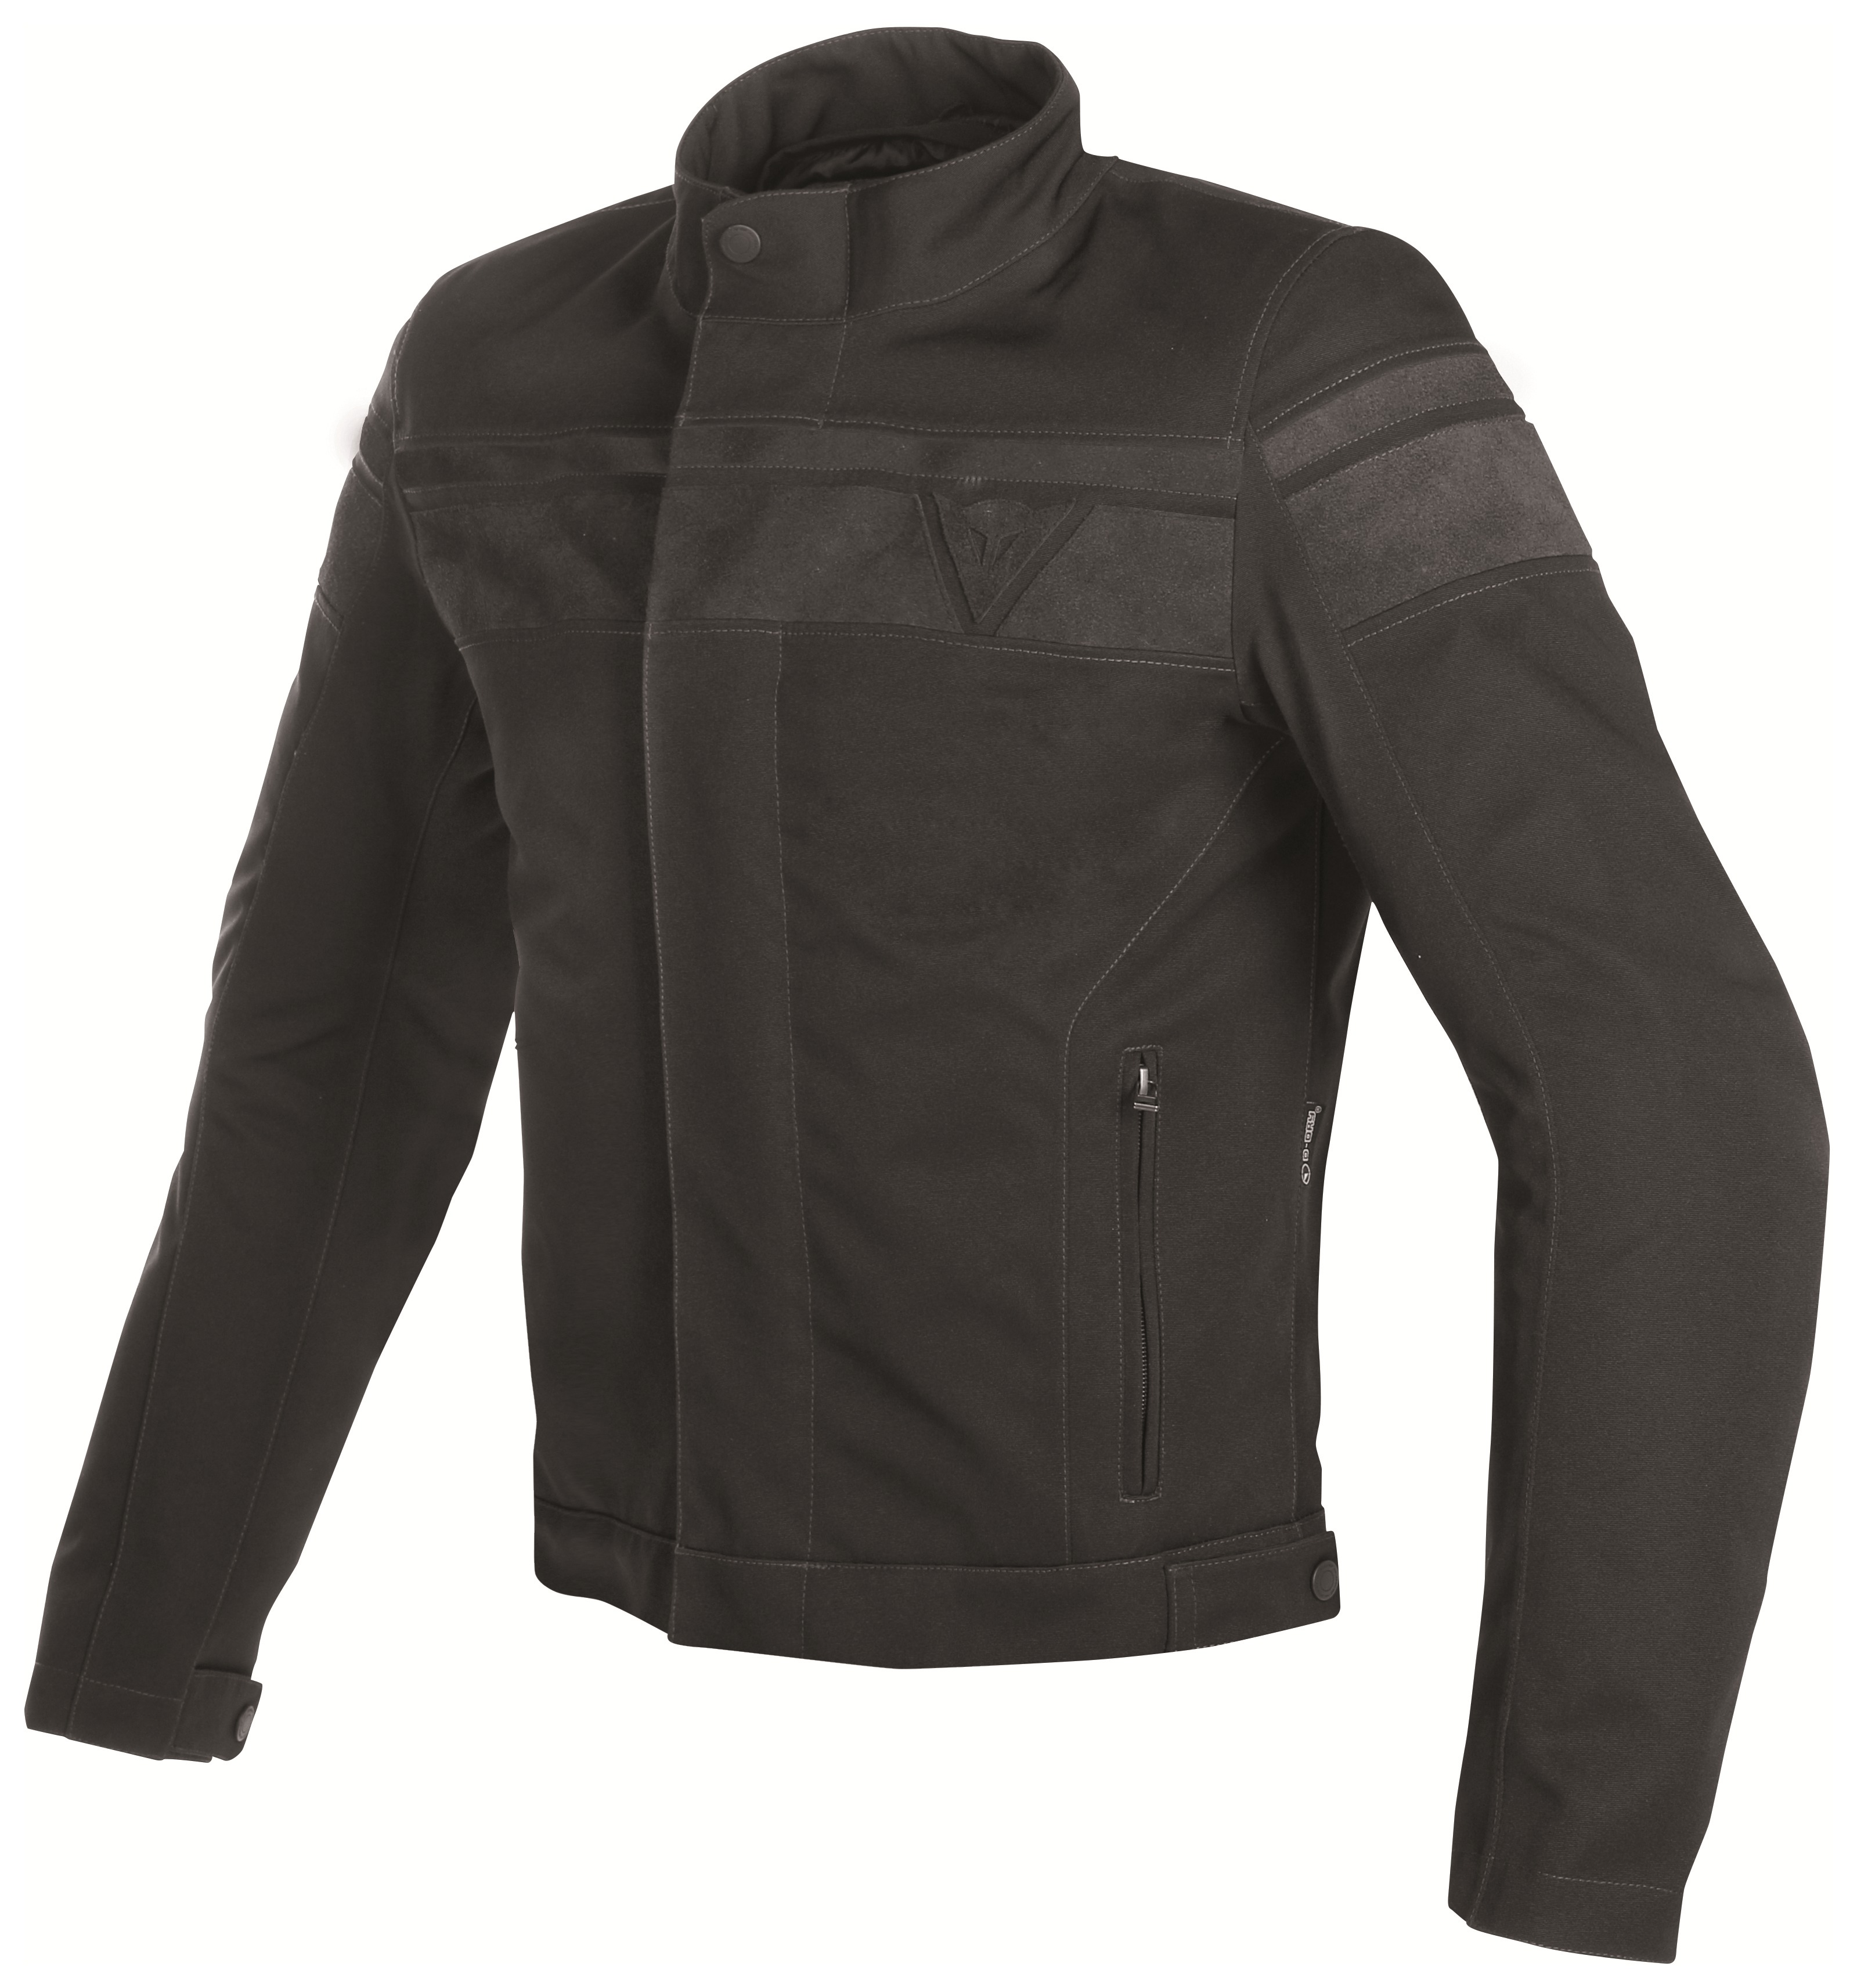 Dainese blackjack d dry jacket revzilla for D garage dainese corbeil horaires